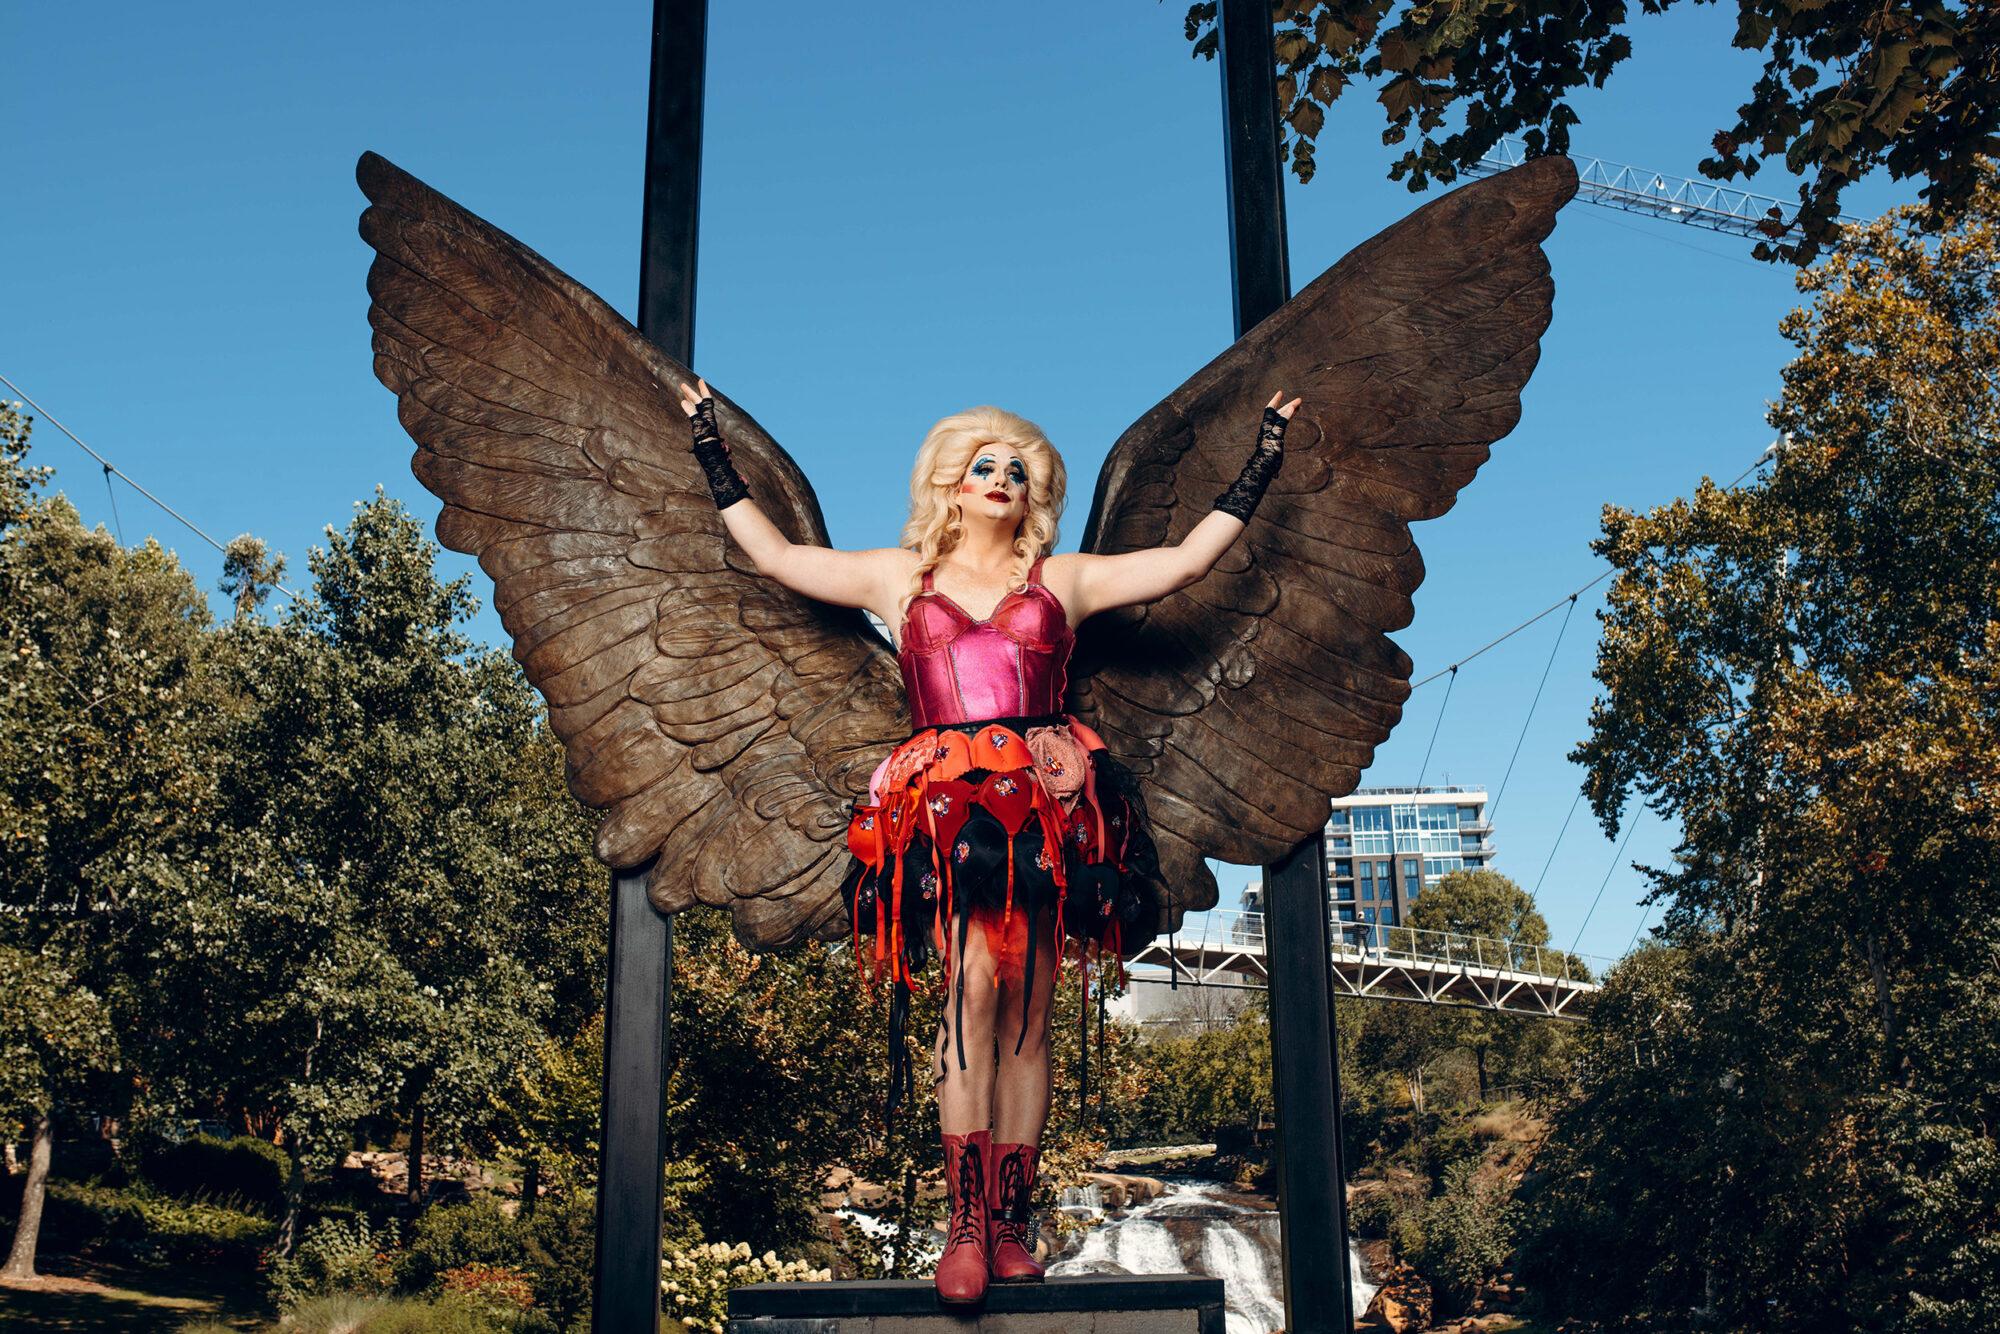 BWW Interview: Delighted Tobehere of HEDWIG AND THE ANGRY INCH at Warehouse Theatre